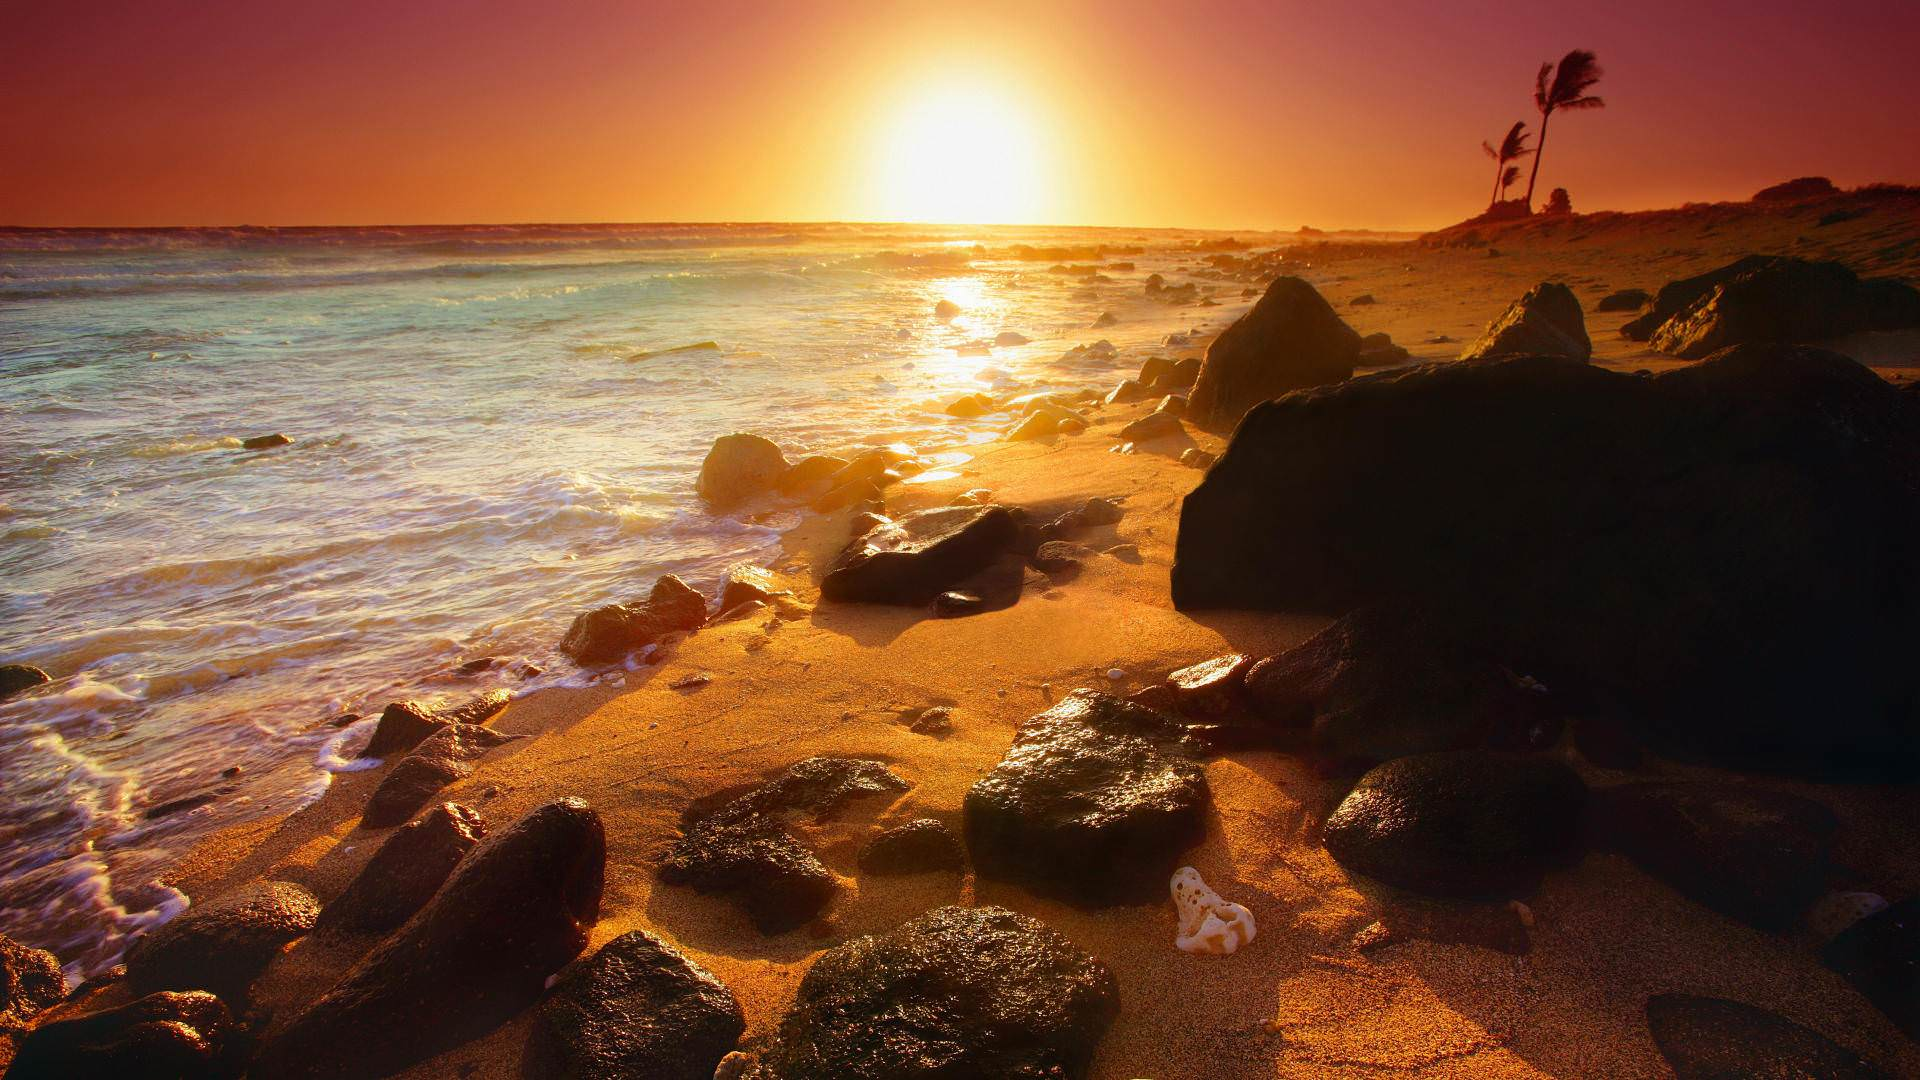 Stone Beach Sunset In Bed Room wall papers